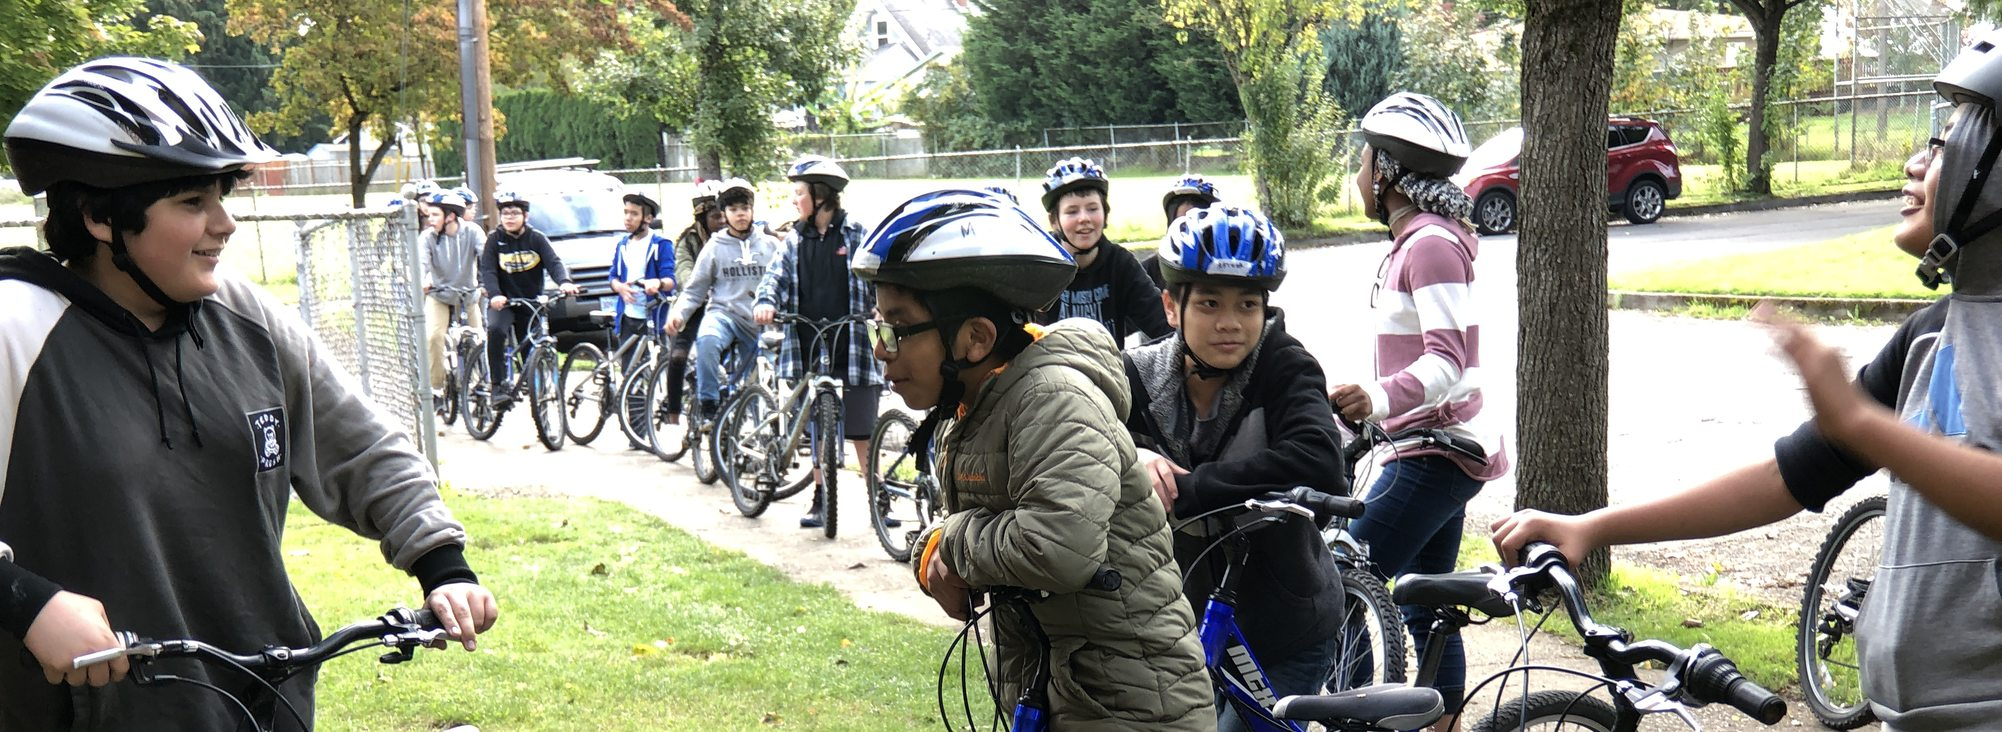 middle school students mounted on their bikes get in line on a sidewalk to return to gym class